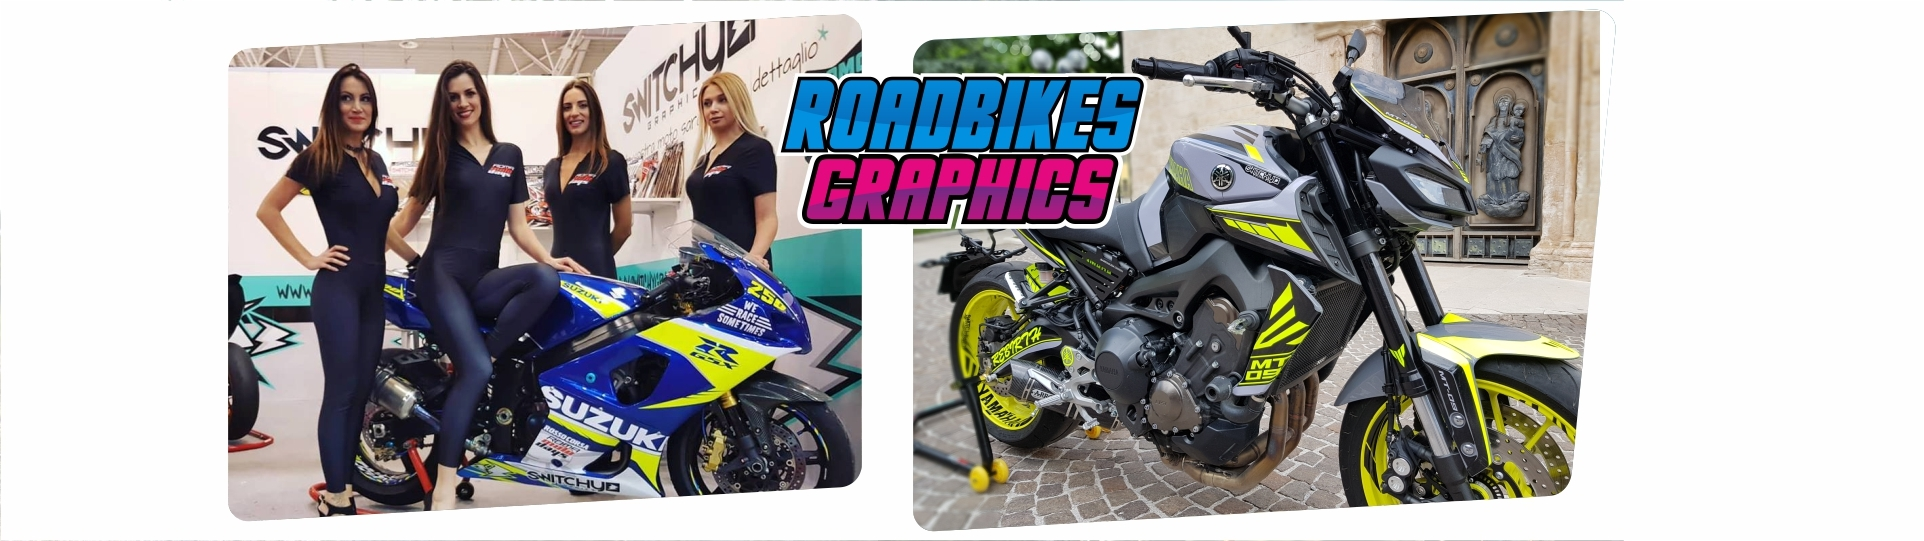 Raodbikes&Naked Graphics!